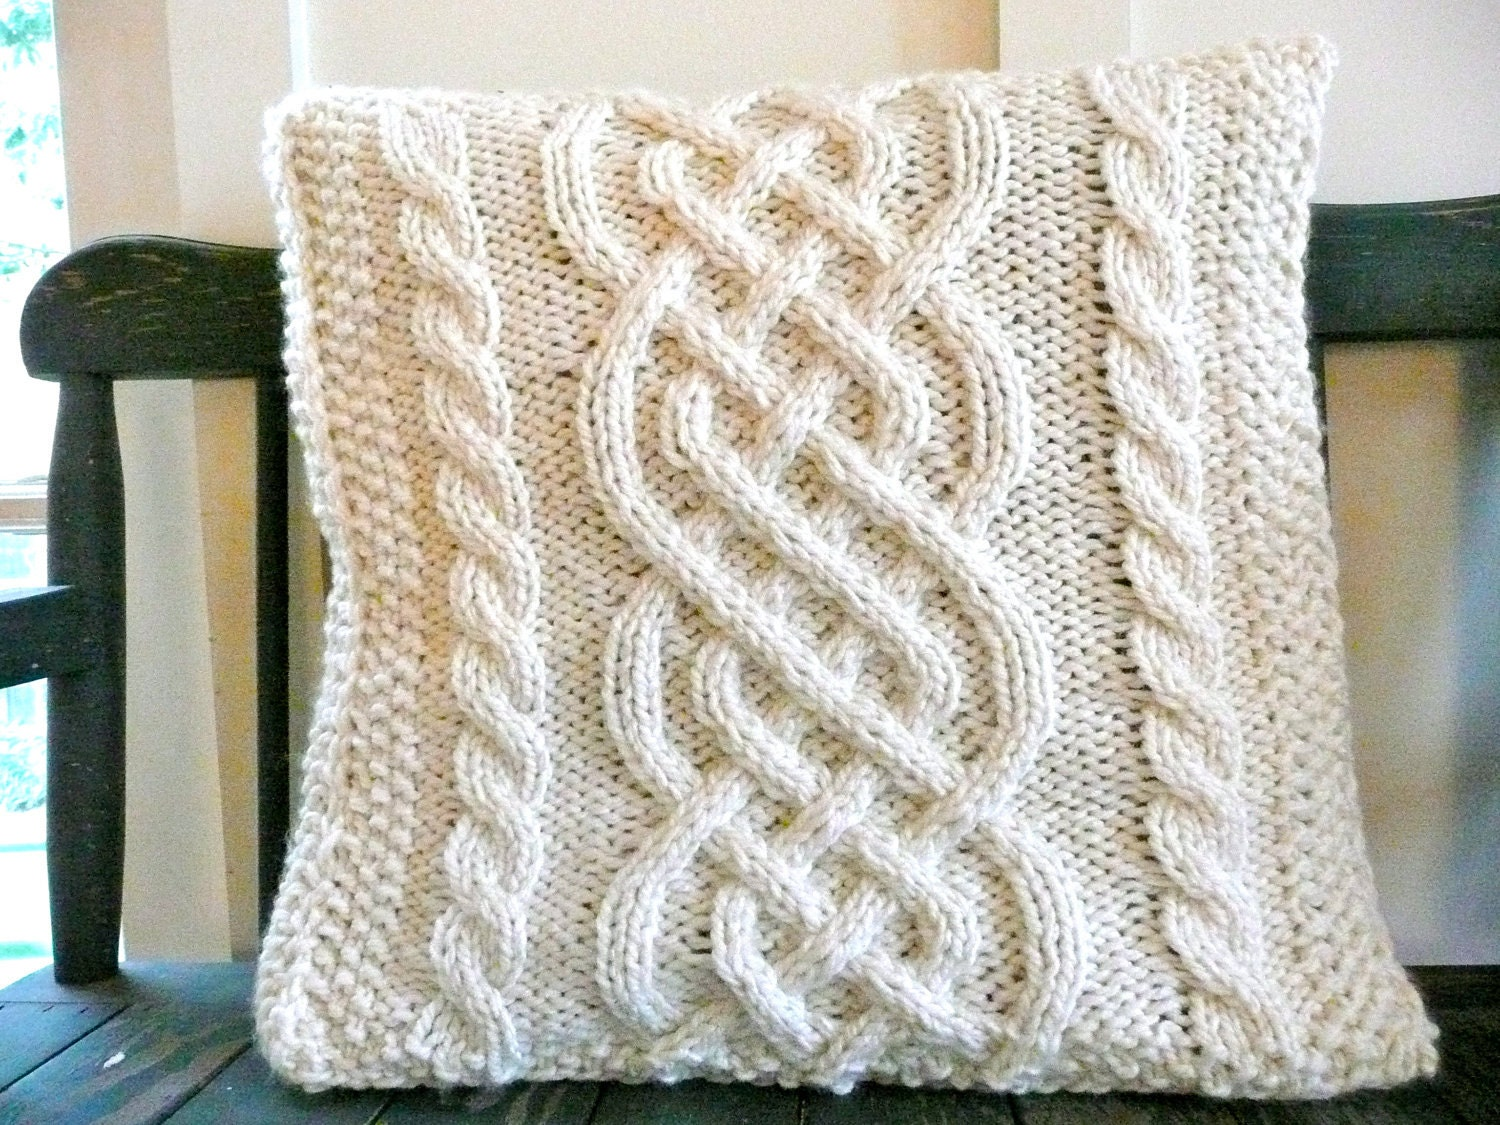 Knitting Pillows : Reserved for mrstarrant celtic weave knit pillow cover